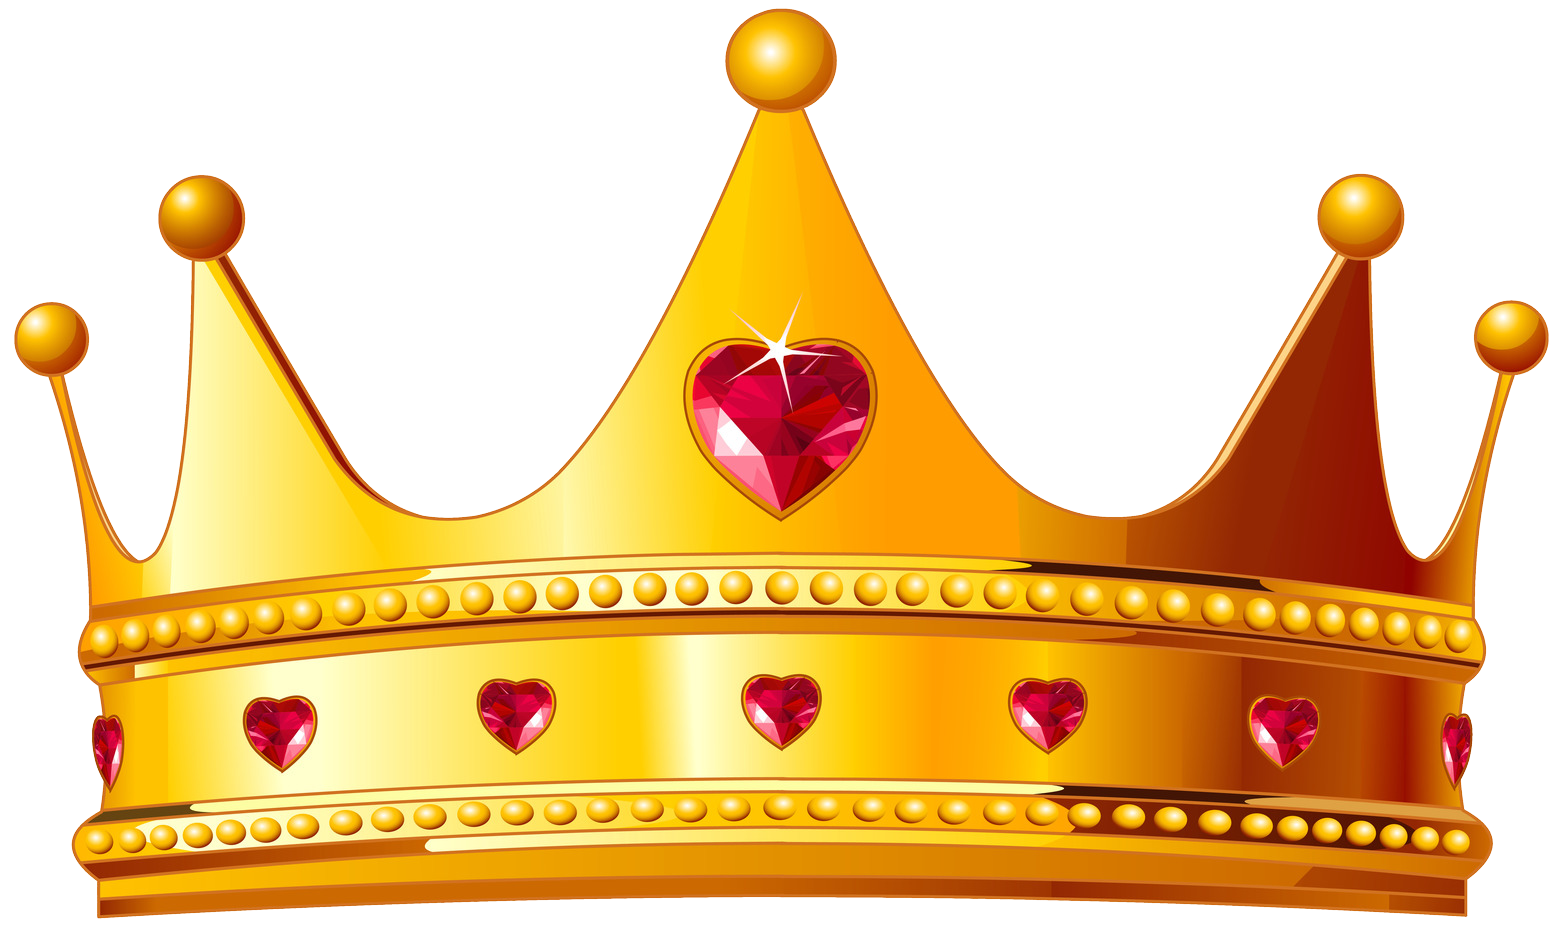 Full Hd Crown Png Transparent Background - King Crown PNG HD